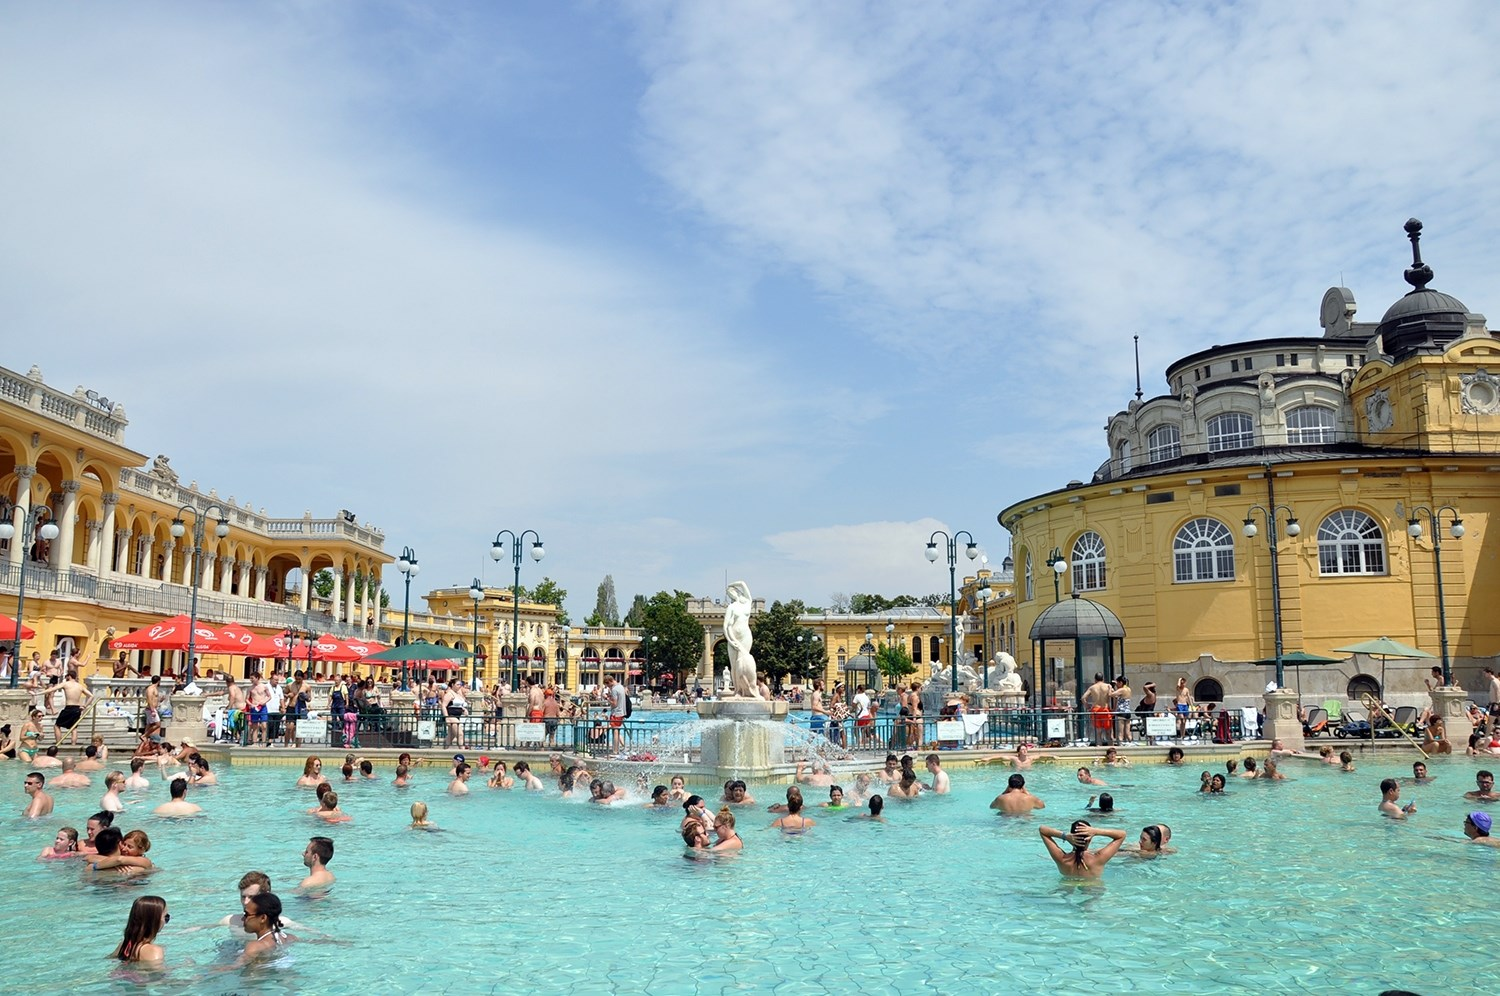 Széchenyi Thermal Bath Things to Do in Budapest Travel